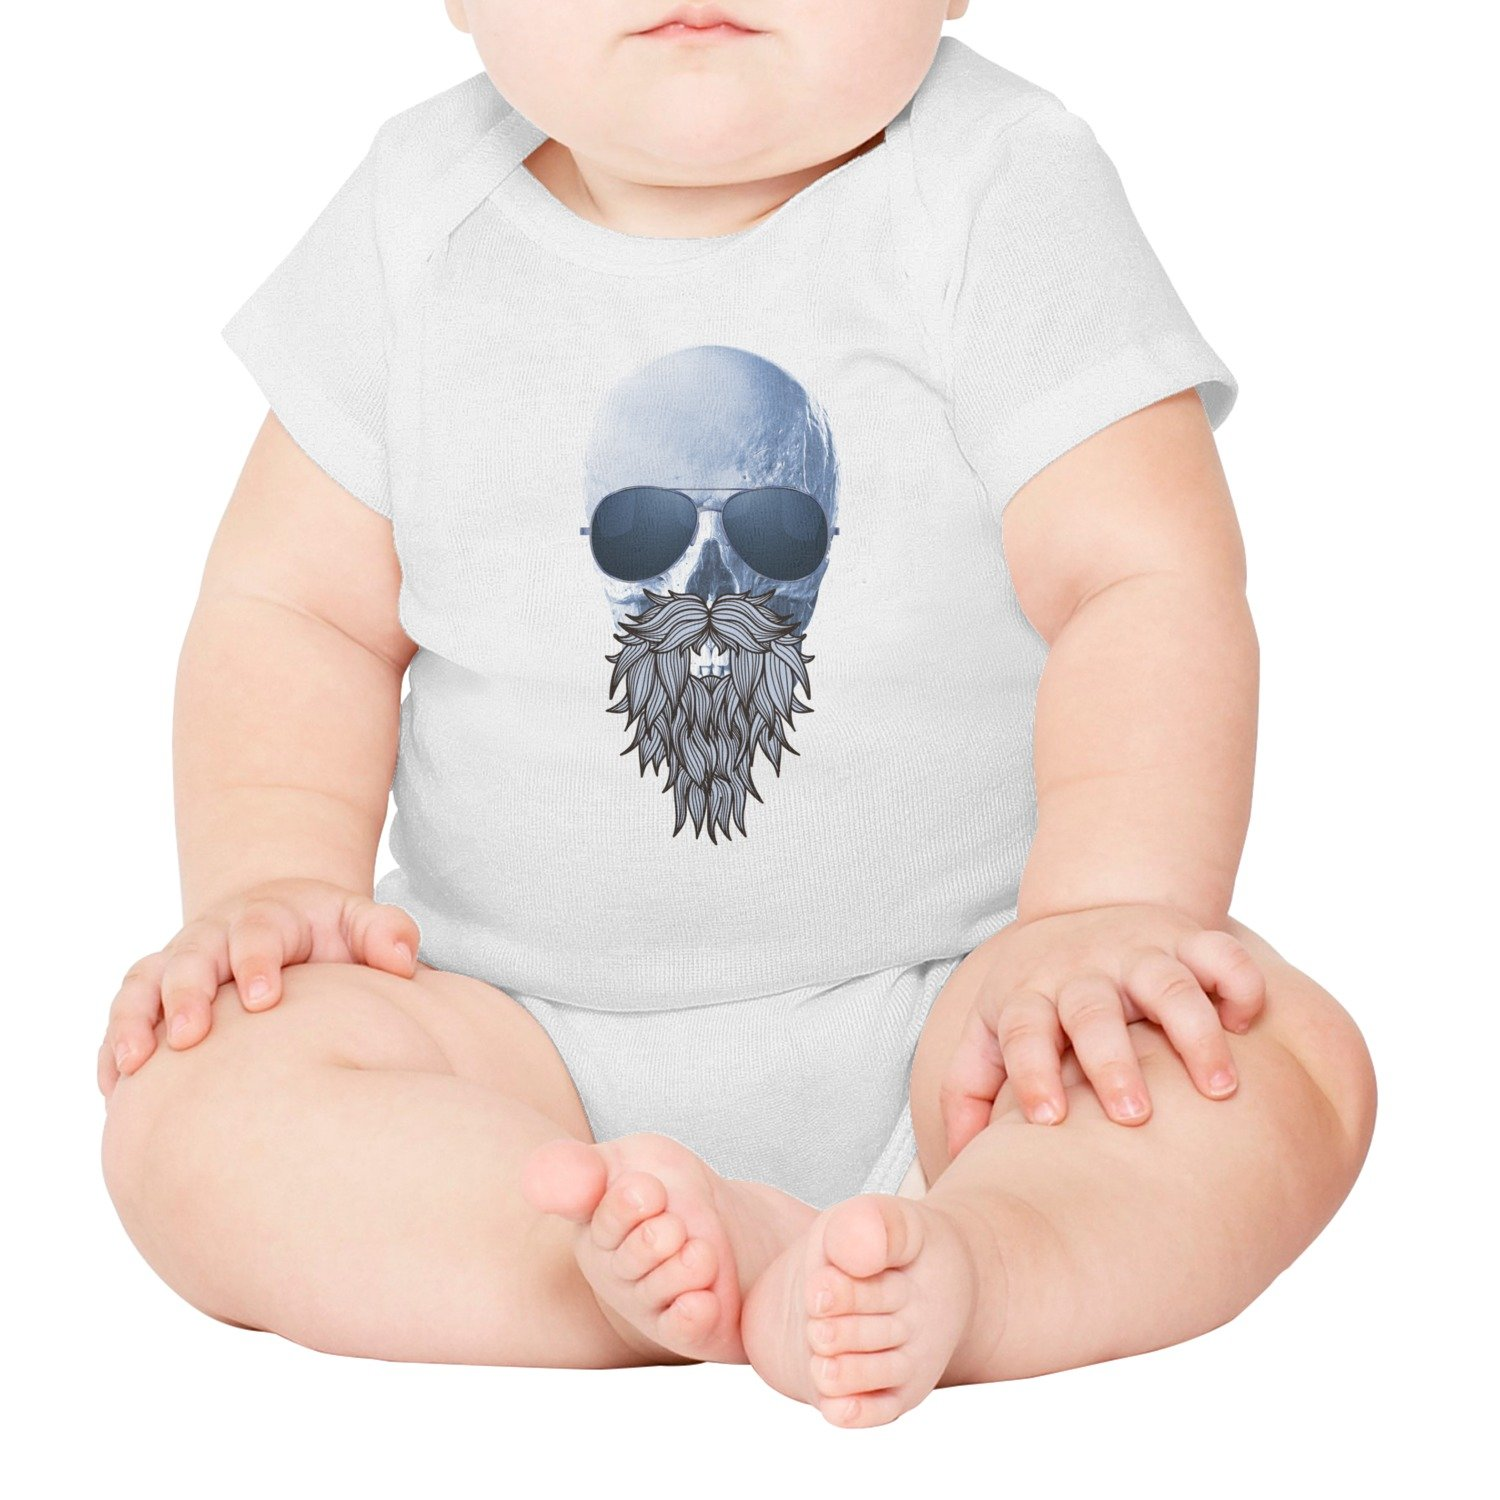 FanYe Skull Beards with Sunglasses Hipster Unisex Infant Baby Onesie Bodysuit Clothes